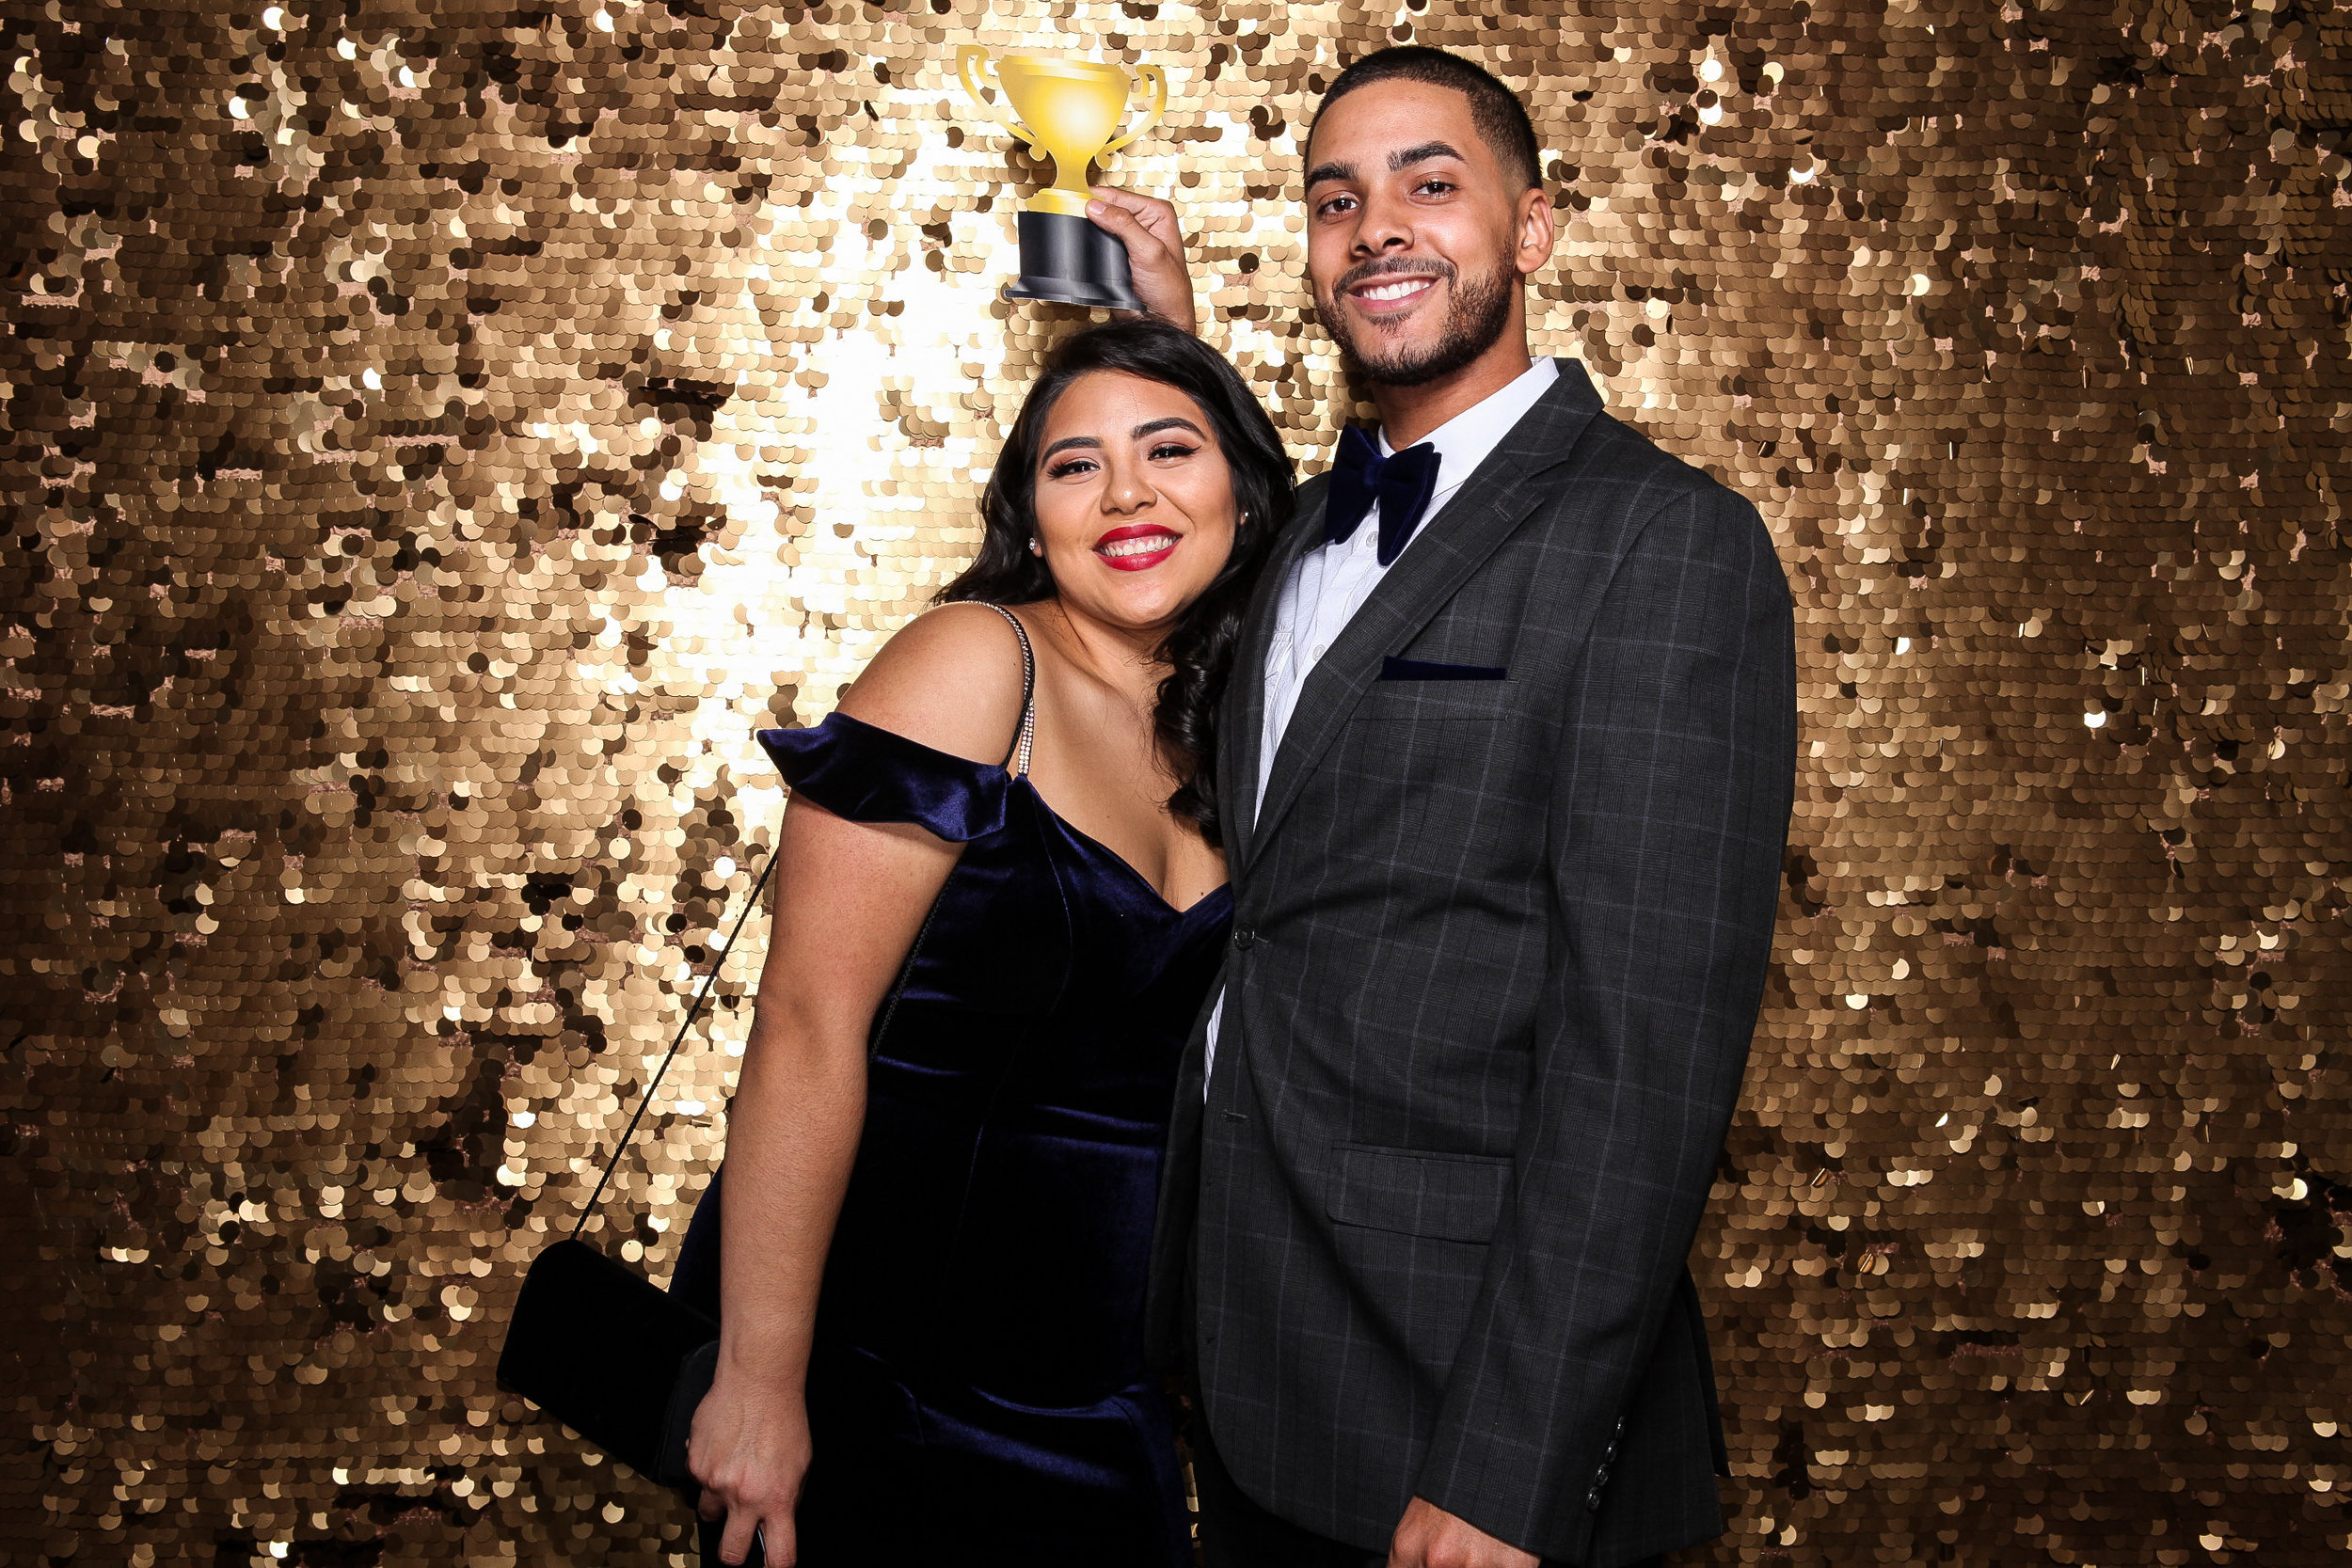 20190503_Adelphi_Senior_Formal-165.jpg